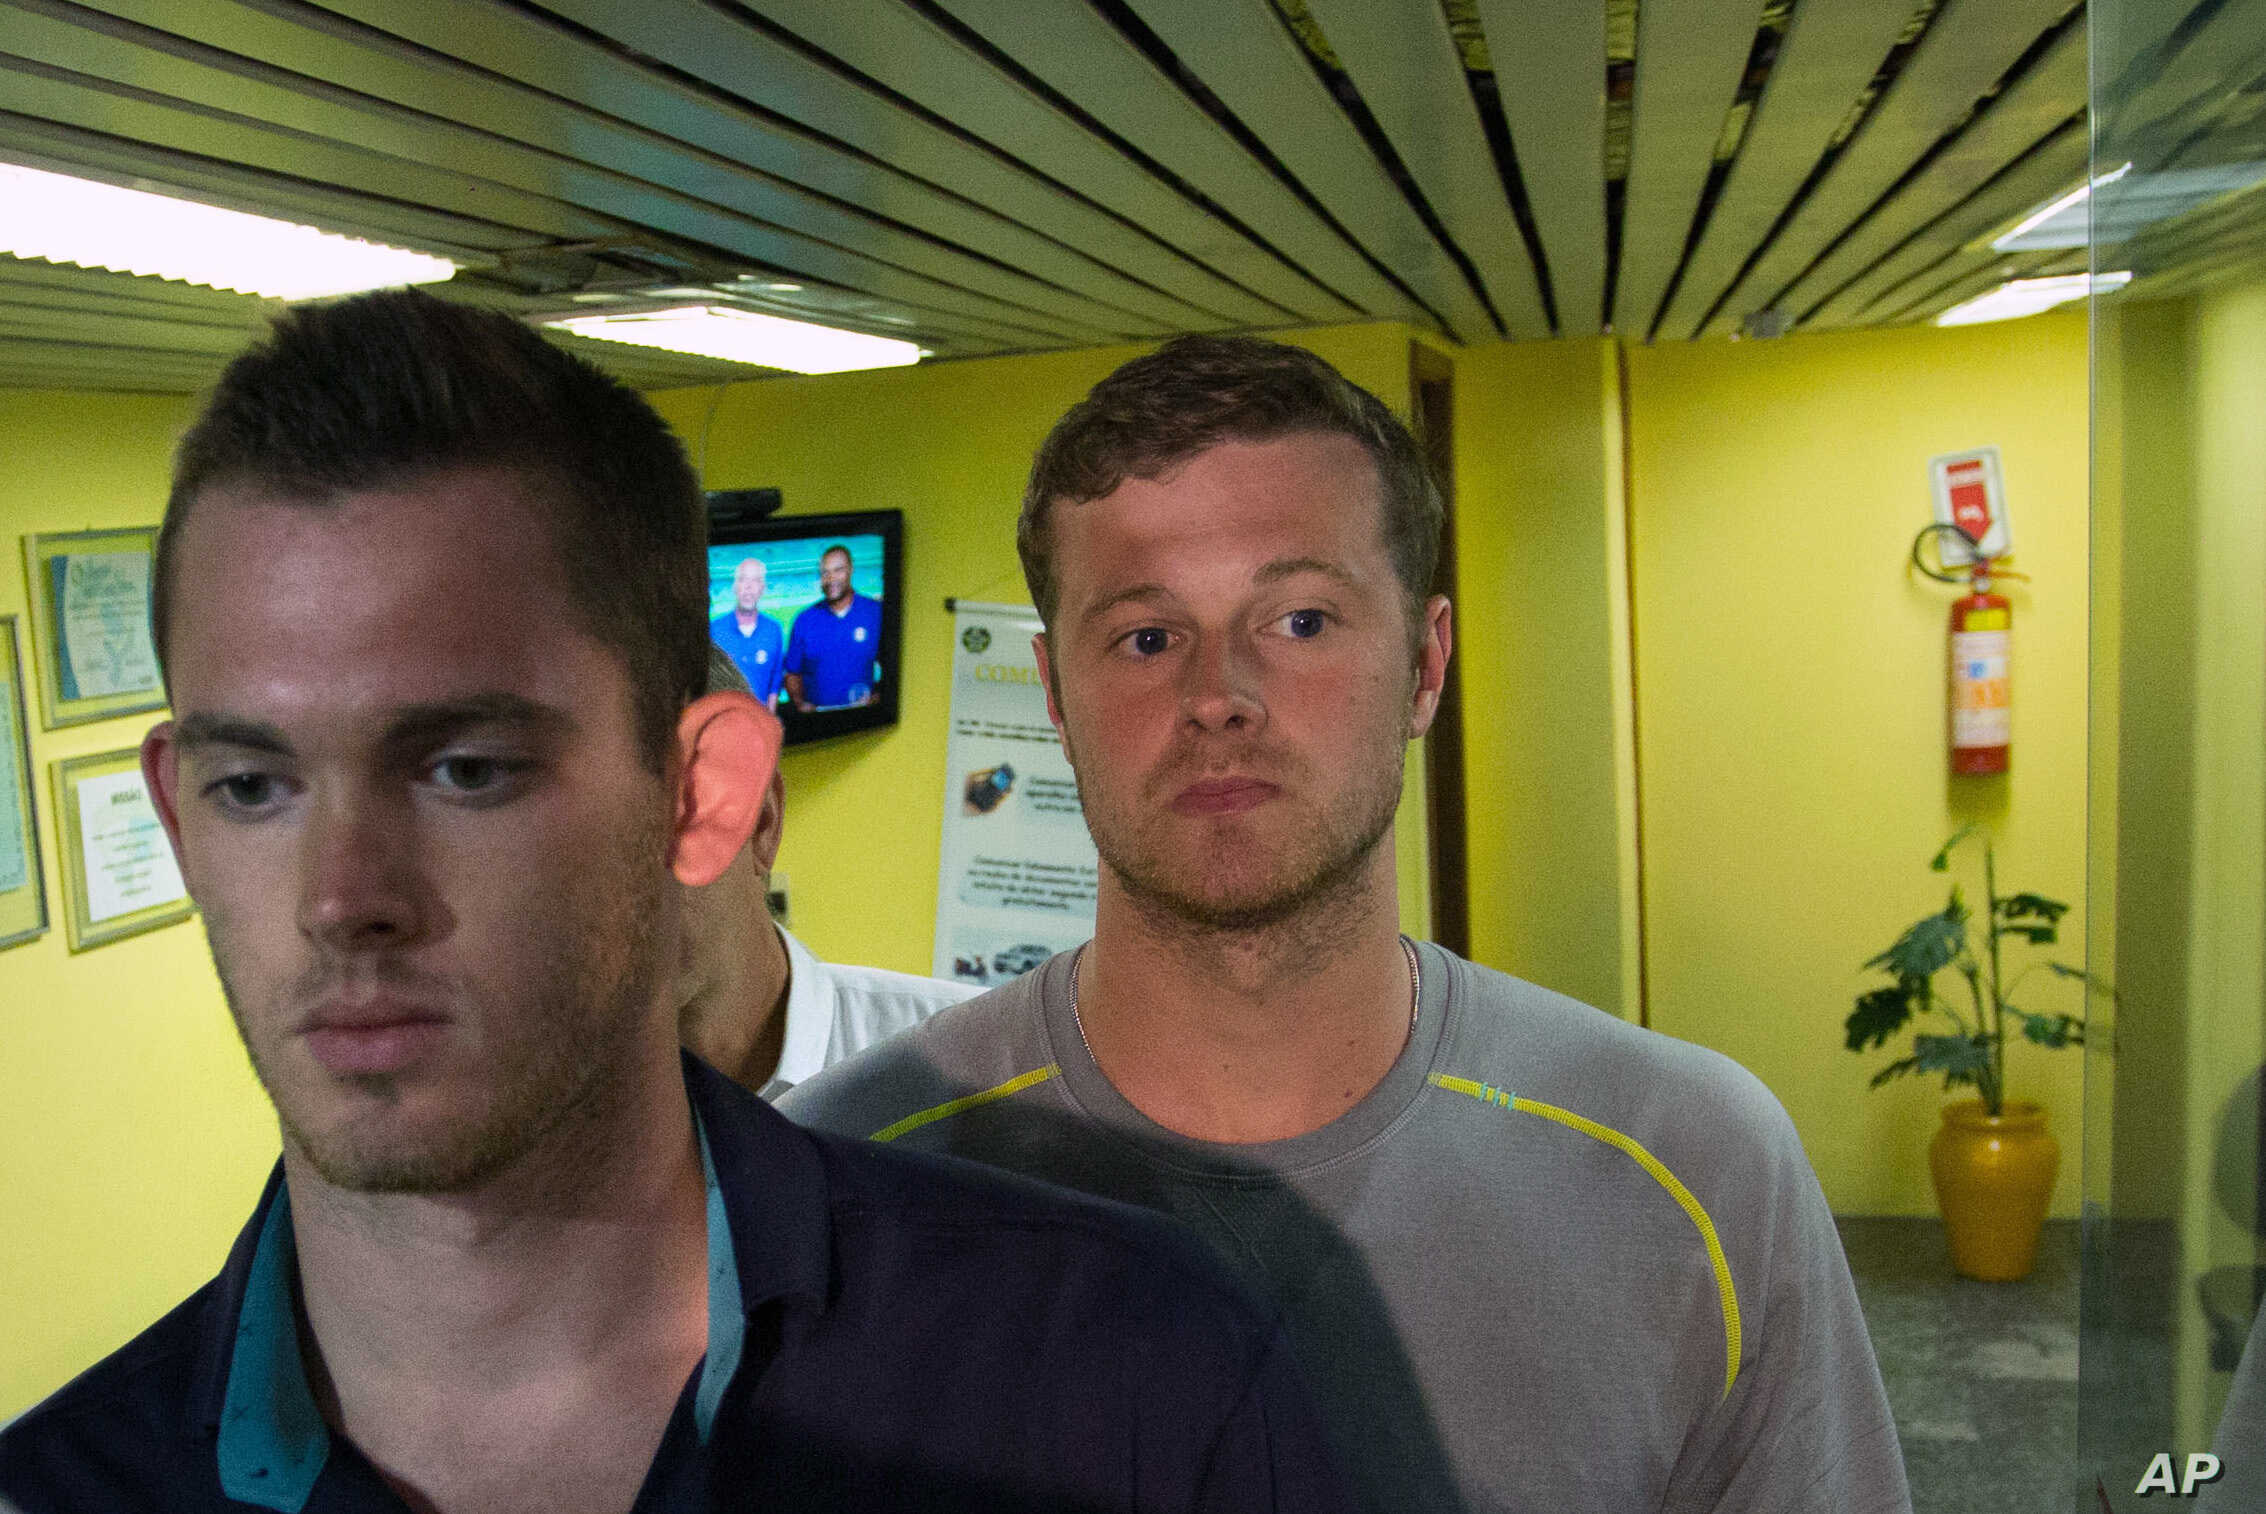 American Olympic swimmers Gunnar Bentz, left, and Jack Conger, center, leave the police station at Rio International airport early Thursday Aug. 18, 2016.